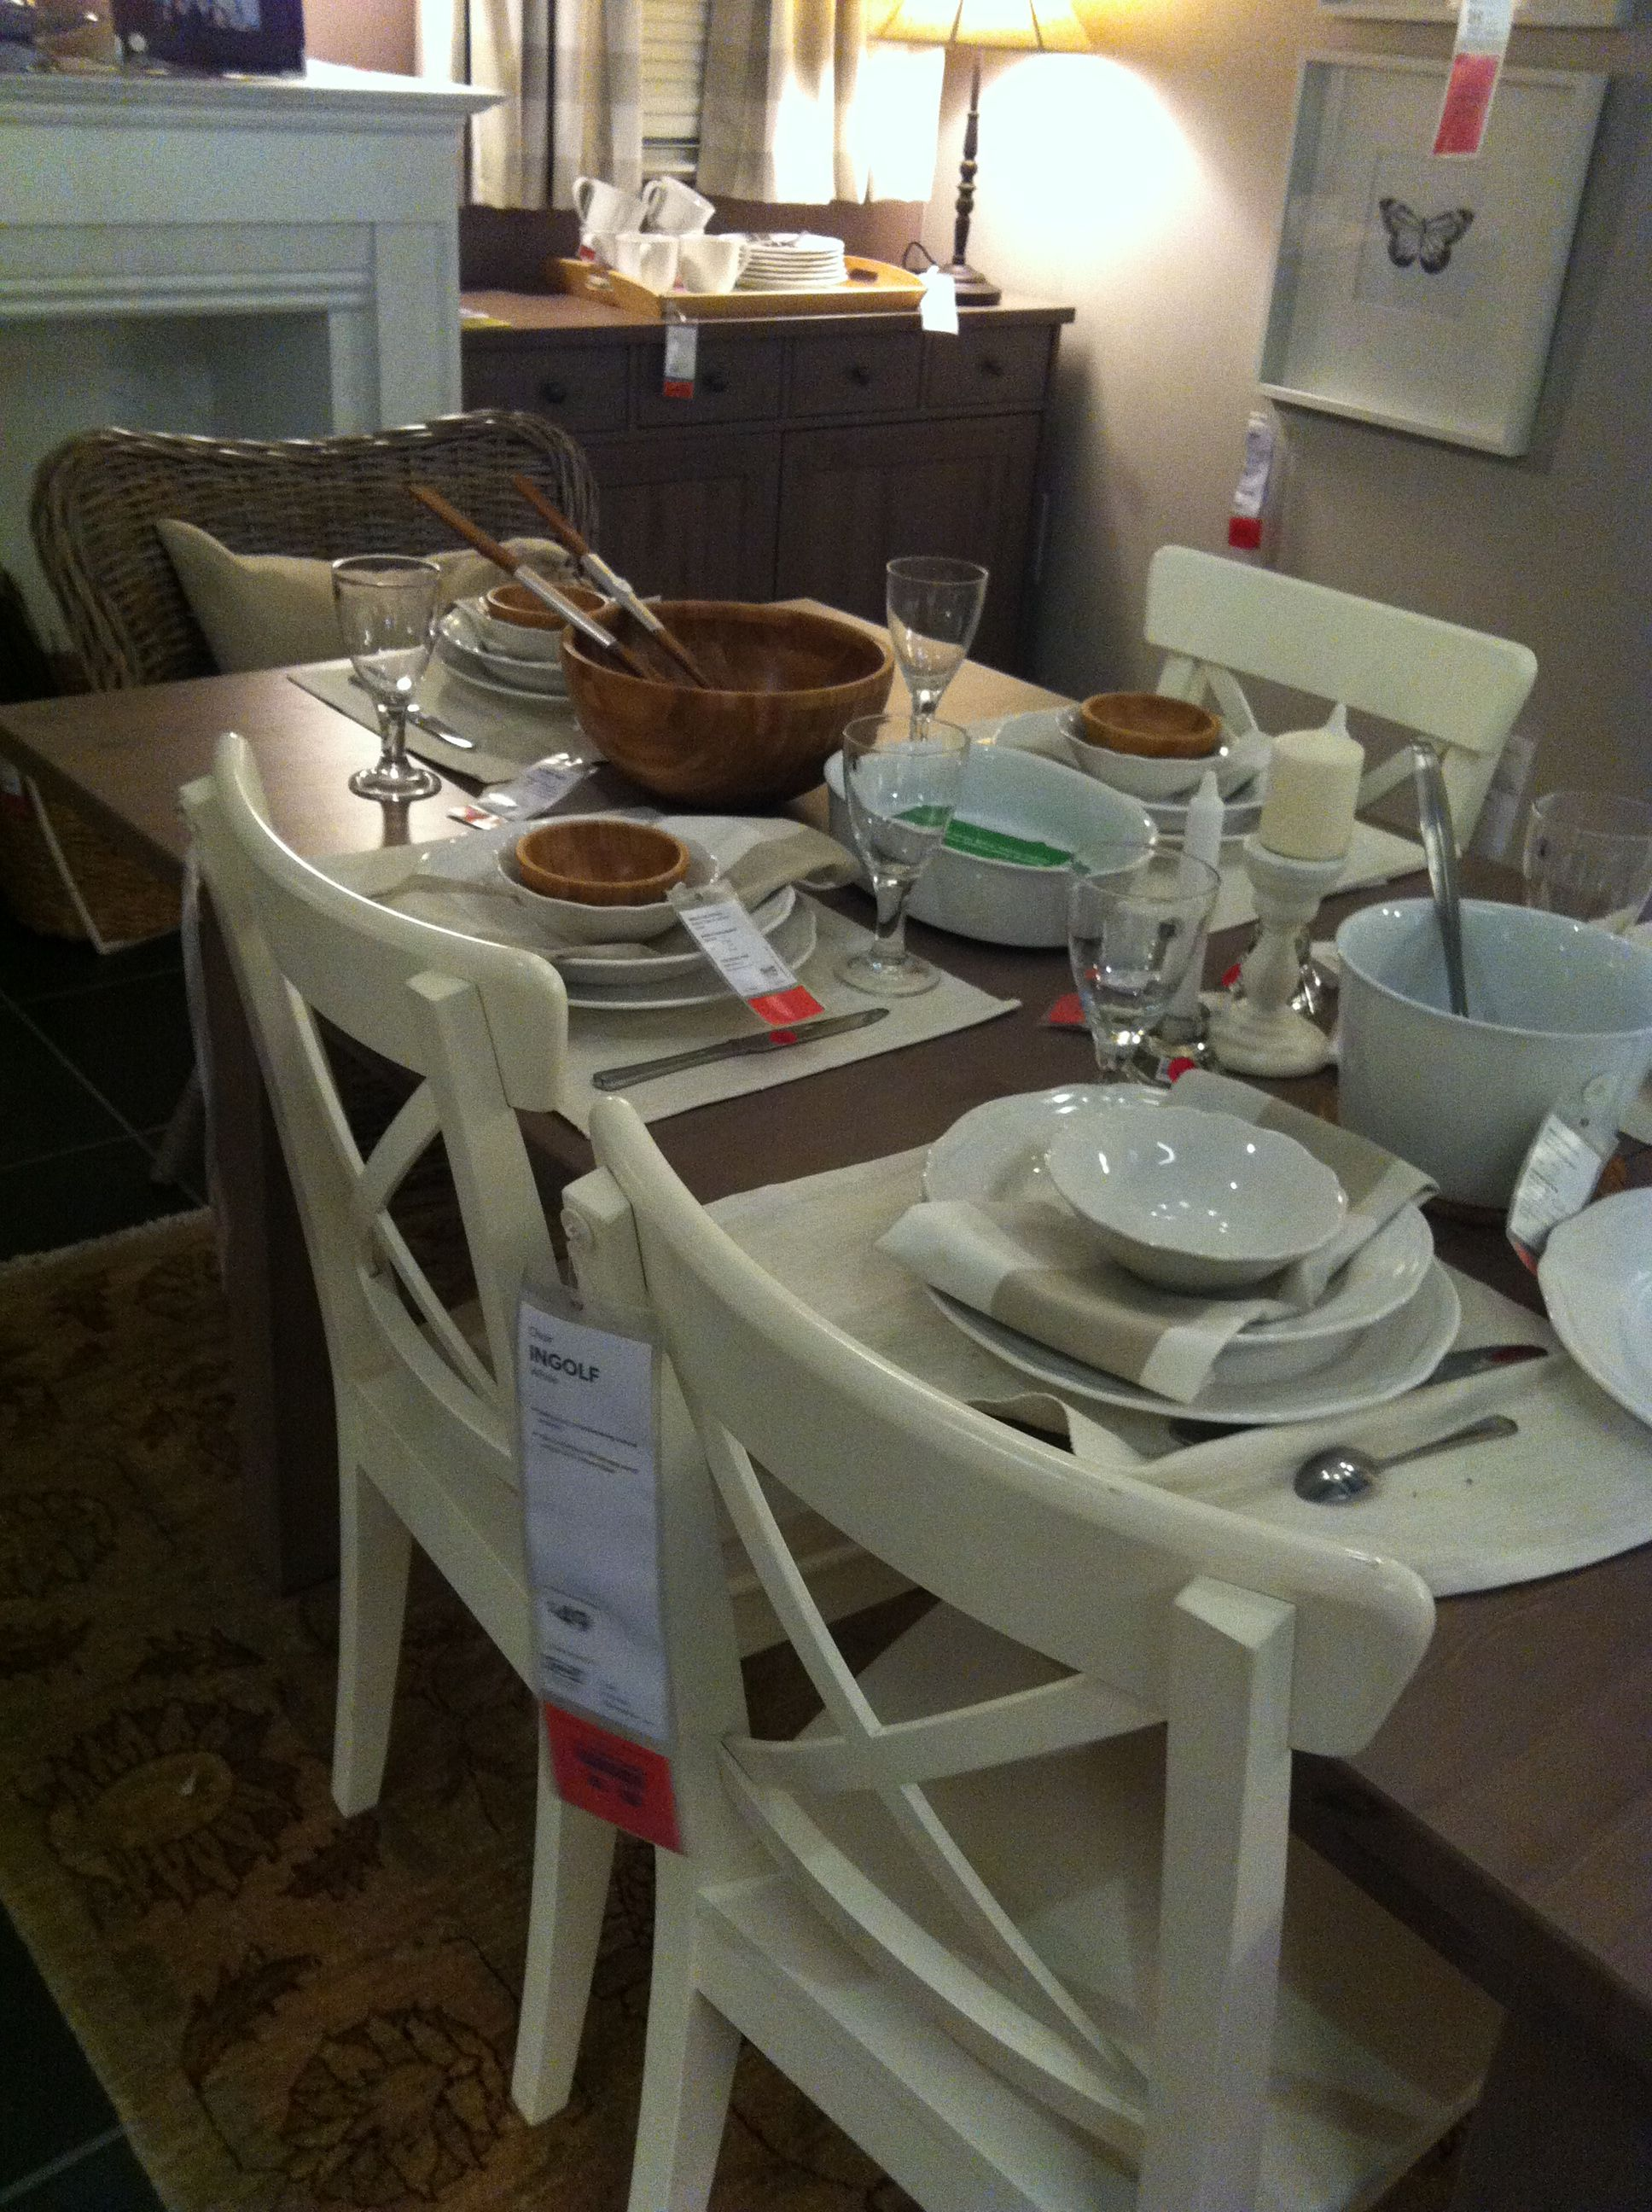 Ikea Stornas Table In Grey Brown Songe Mirror Ingolf Chairs In